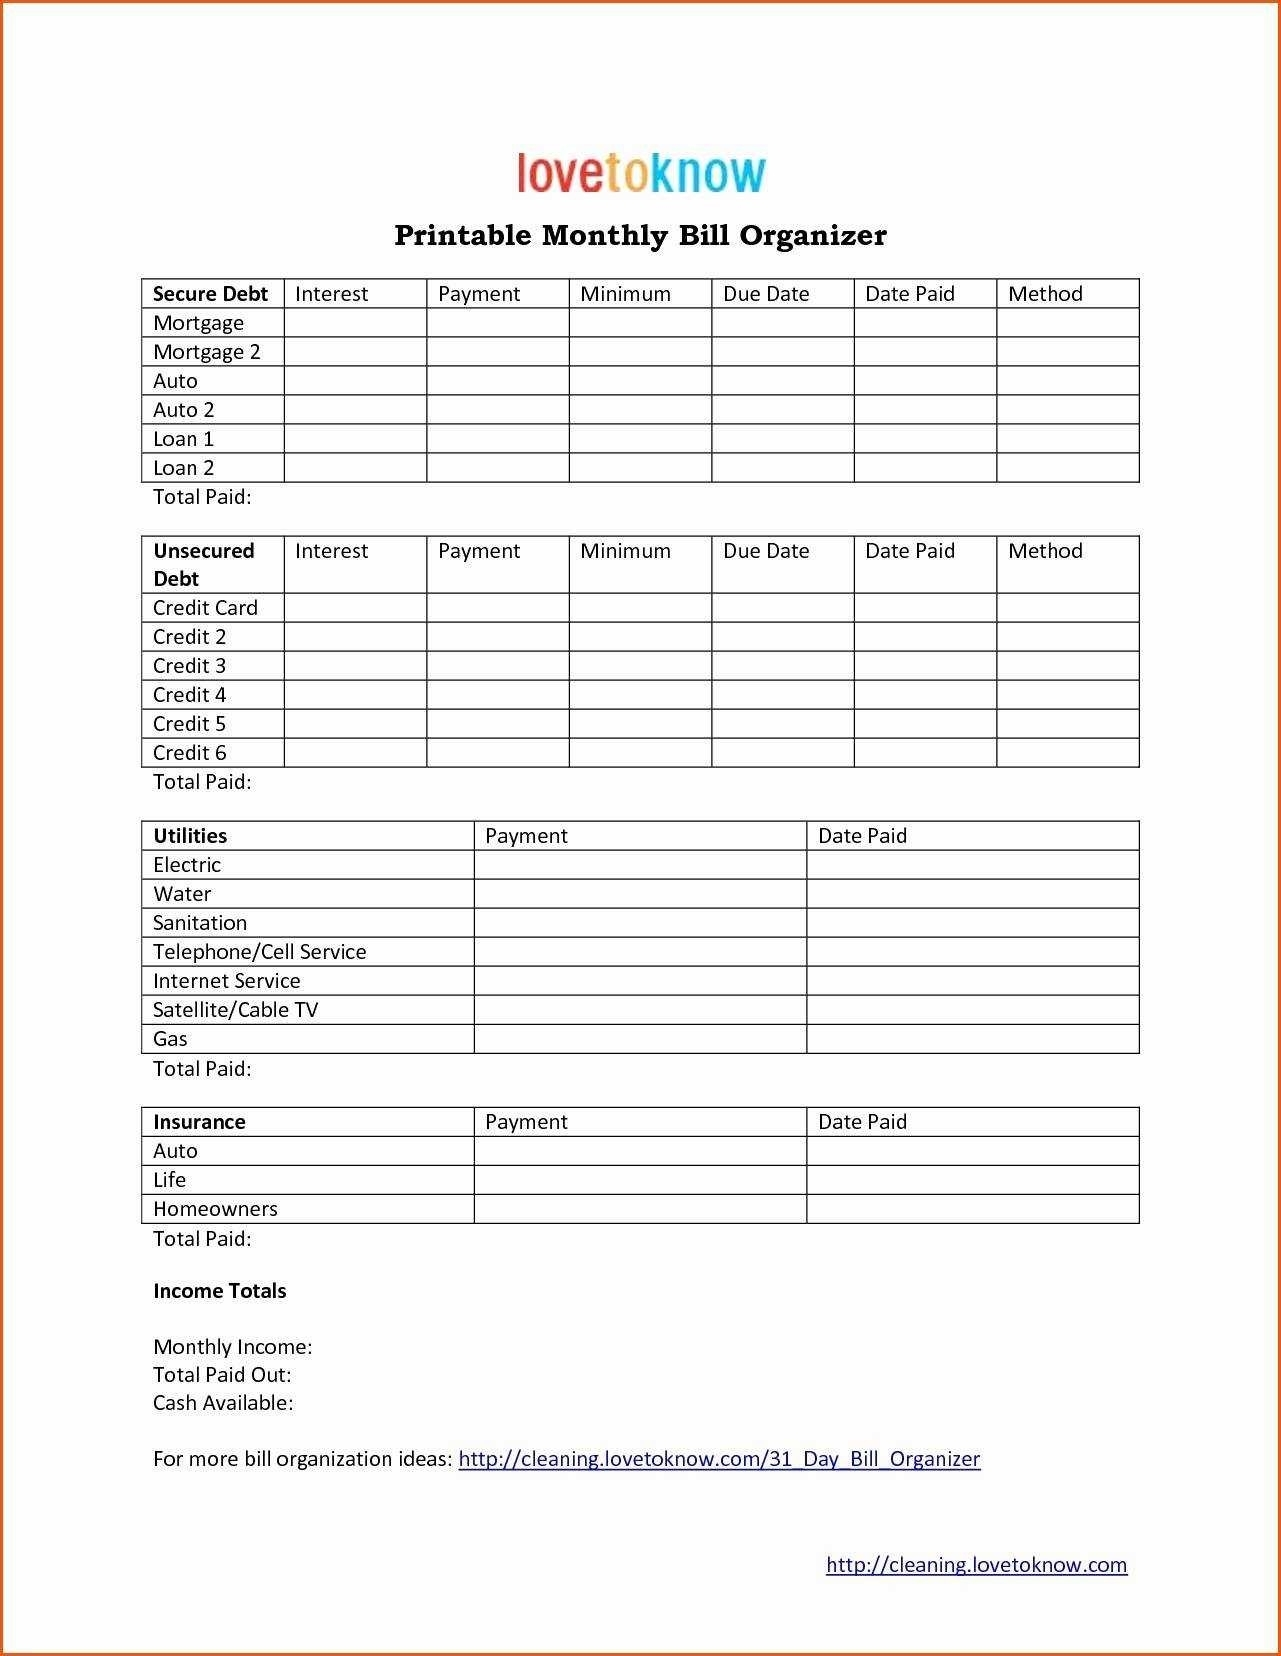 Monthly Profit And Loss Statement Template And Bill Pay Calendar regarding Printable Monthly Bill Organizer Template